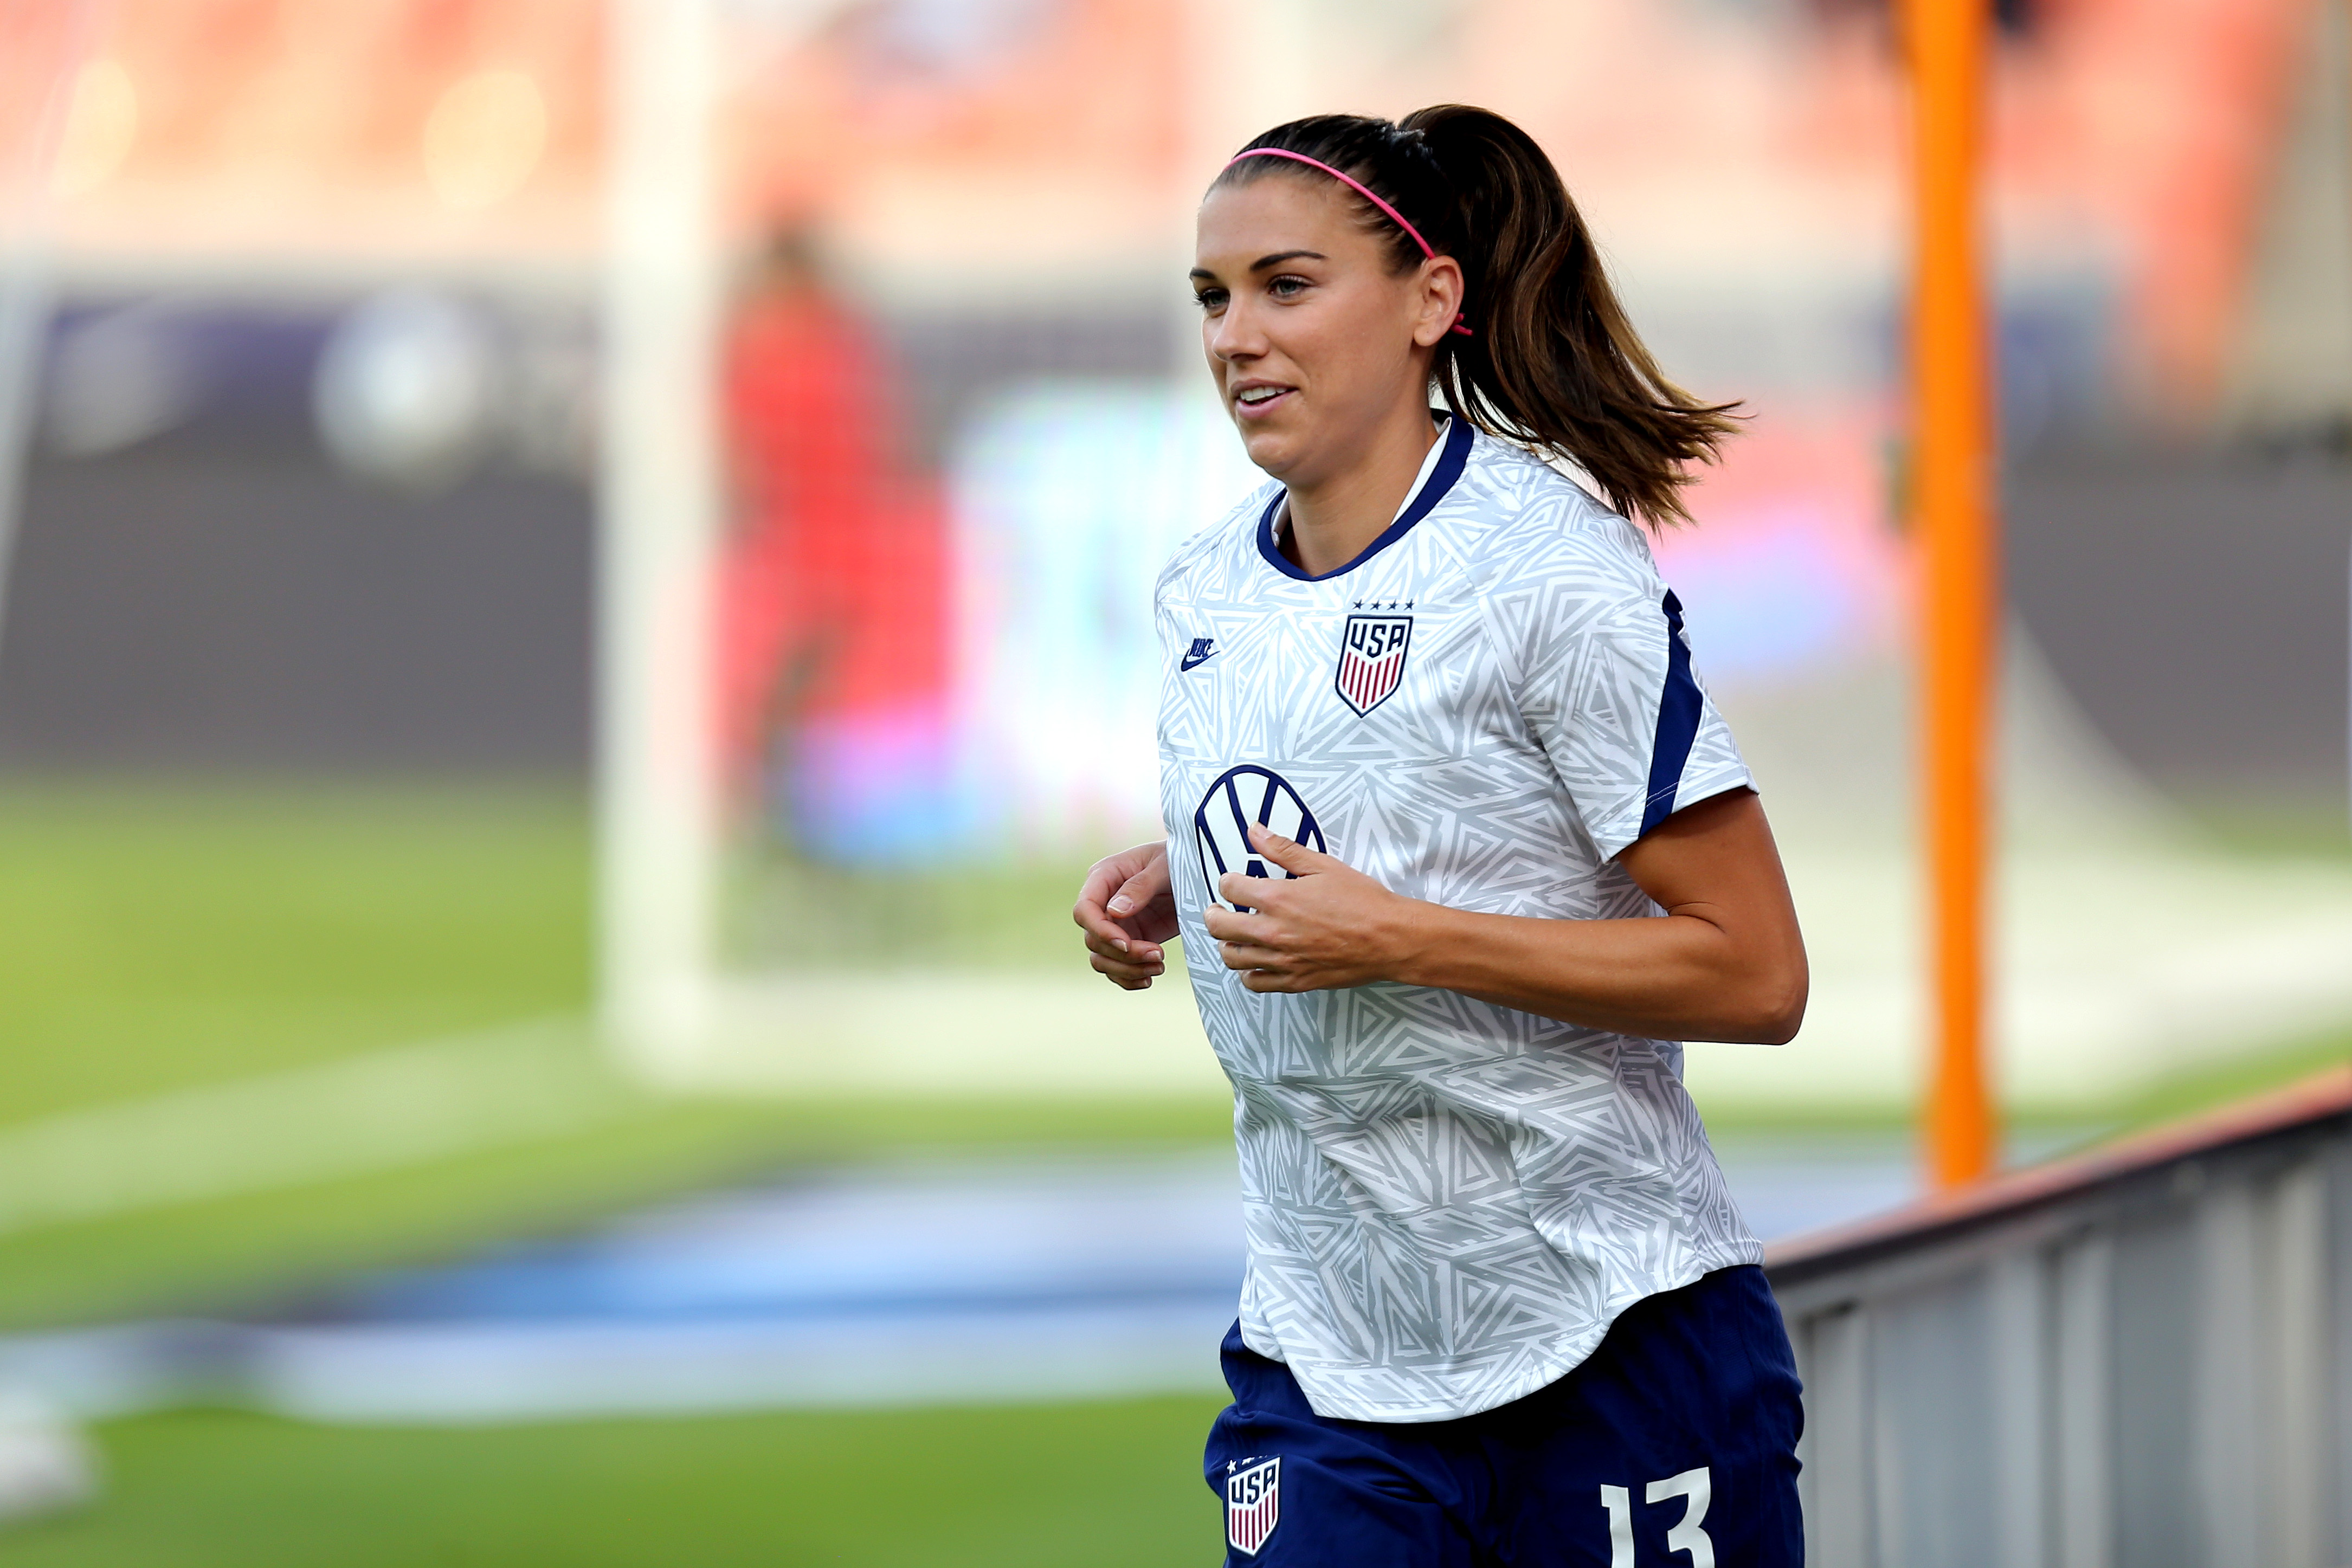 Jun 10, 2021; Houston, Texas, USA; United States forward Alex Morgan (13) takes the field for warmups prior to the match against Portugal during a WNT Summer Series international friendly soccer match at BBVA Stadium. Mandatory Credit: Erik Williams-USA TODAY Sports